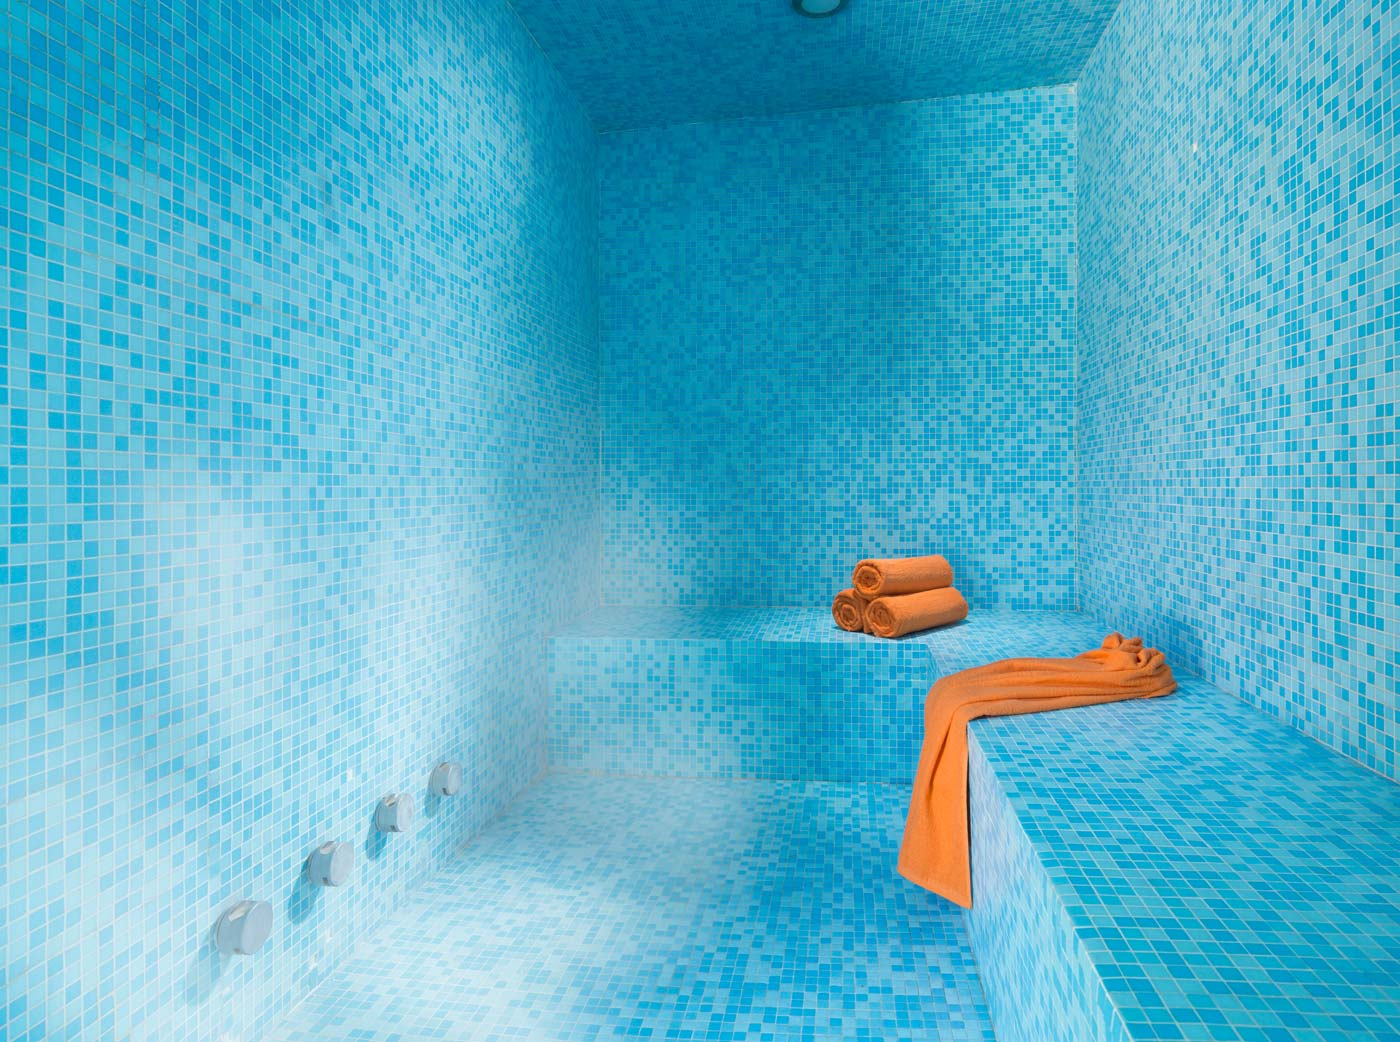 Piscina e Wellness - Hotel Buonafortuna Bellaria - 3 Stelle